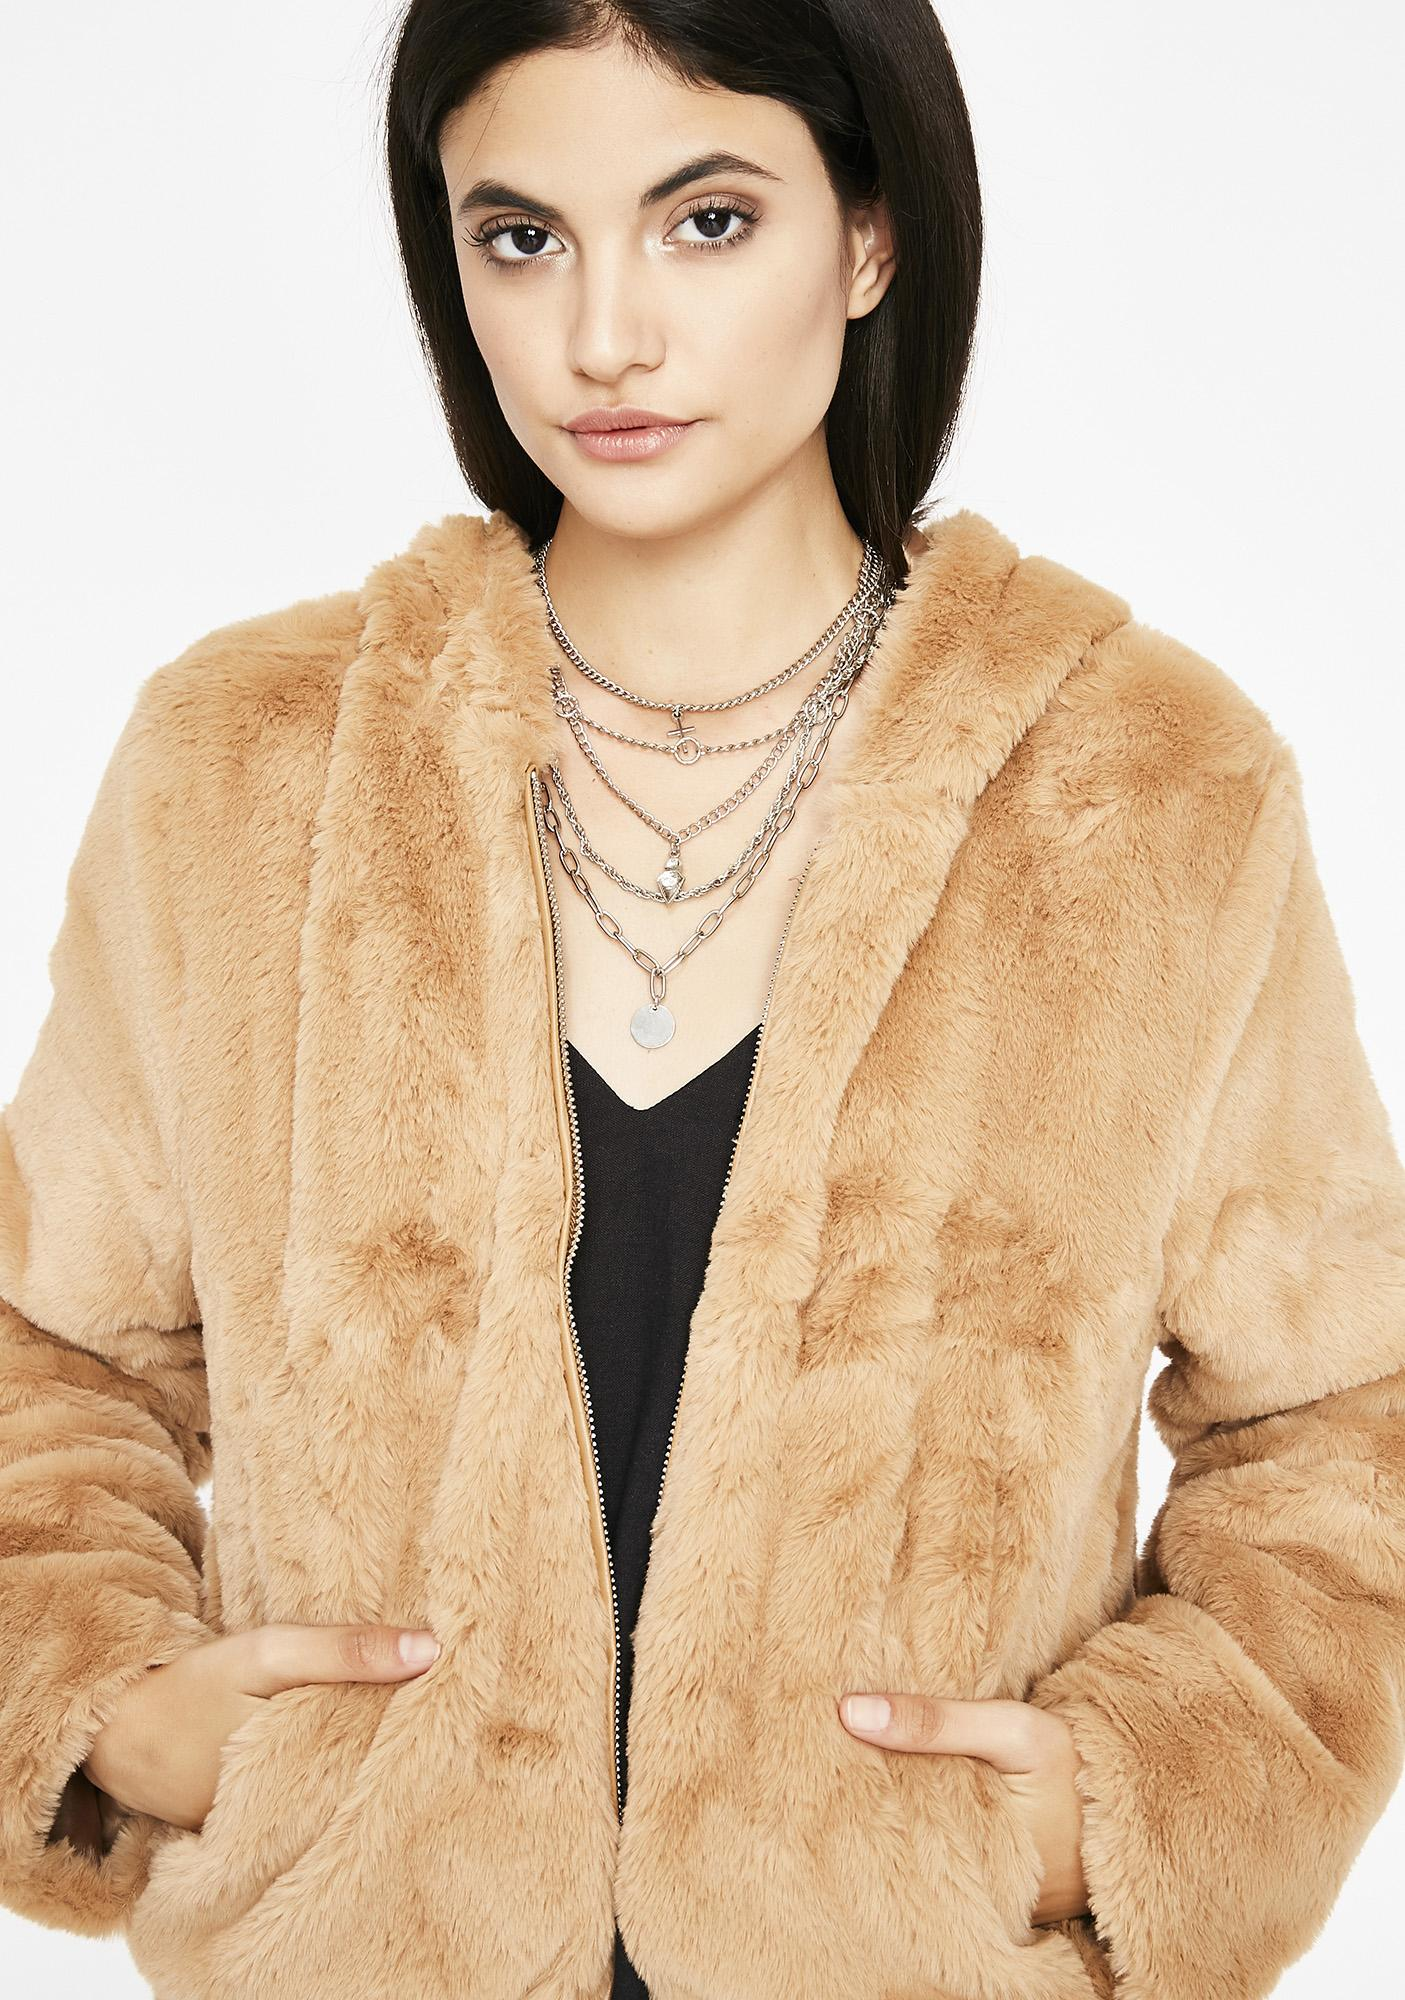 Camel Feel Me Up Fuzzy Jacket by Settle Down